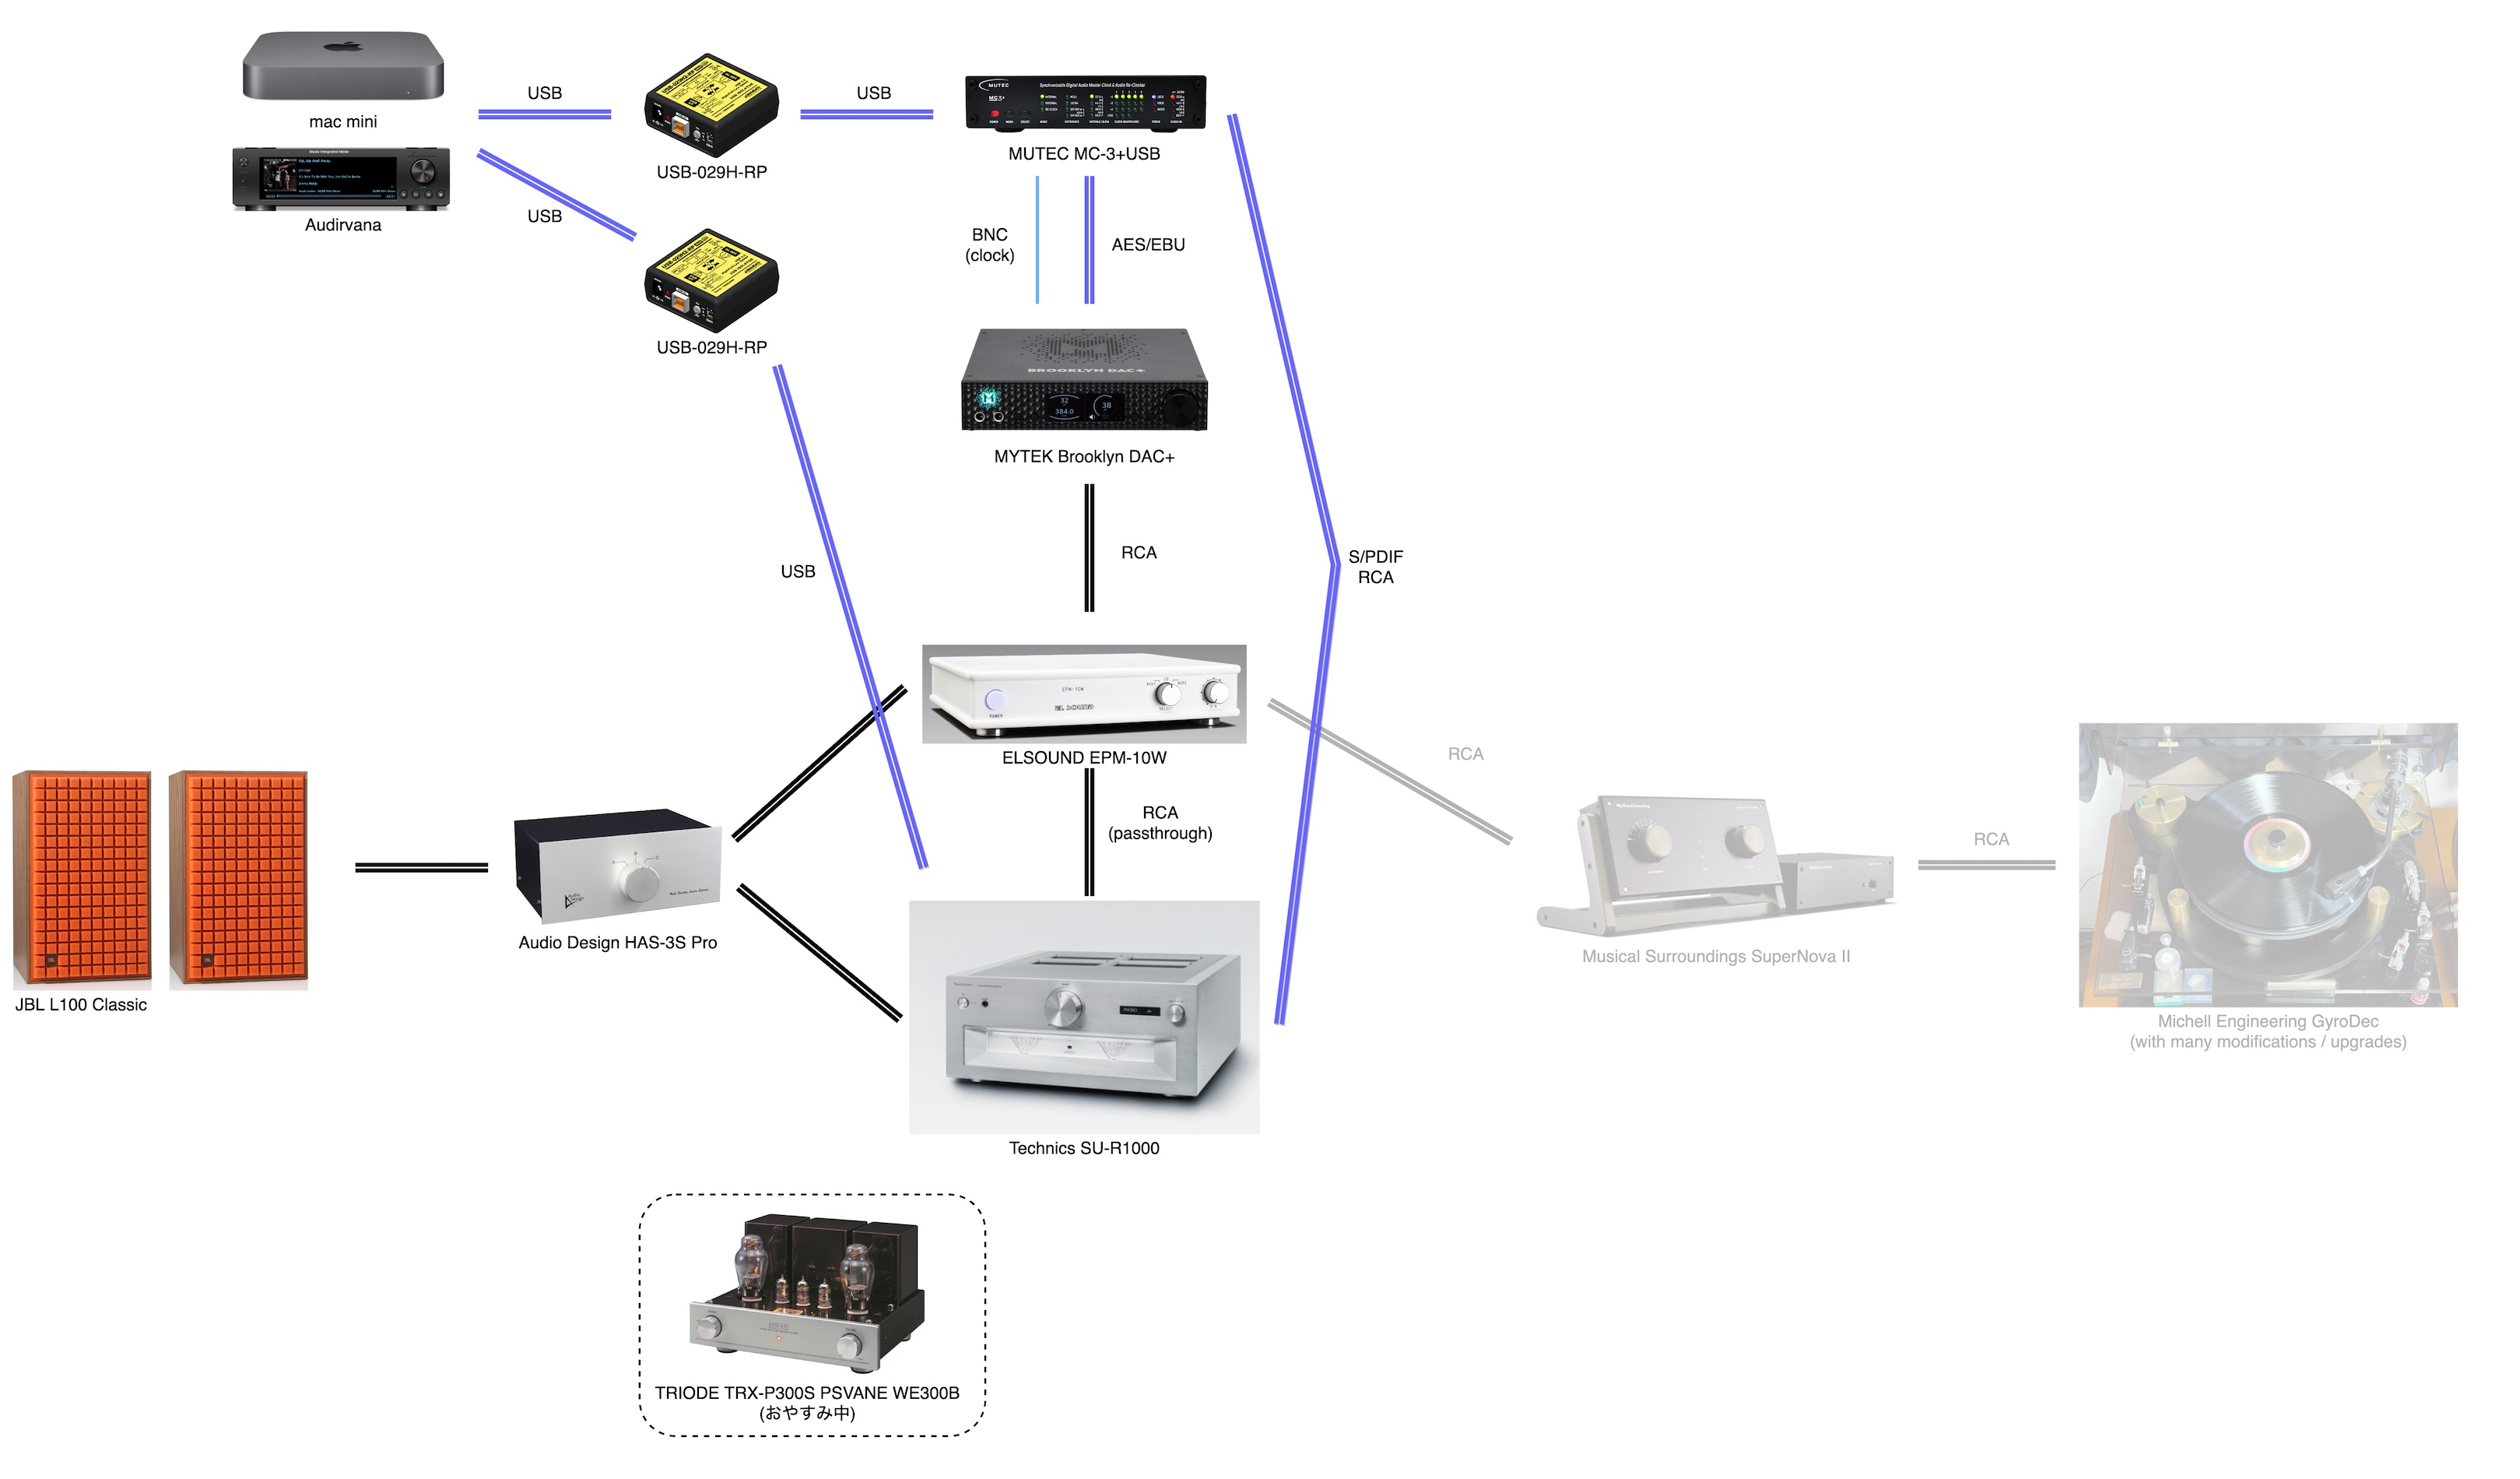 System Configuration as of June 23, 2021